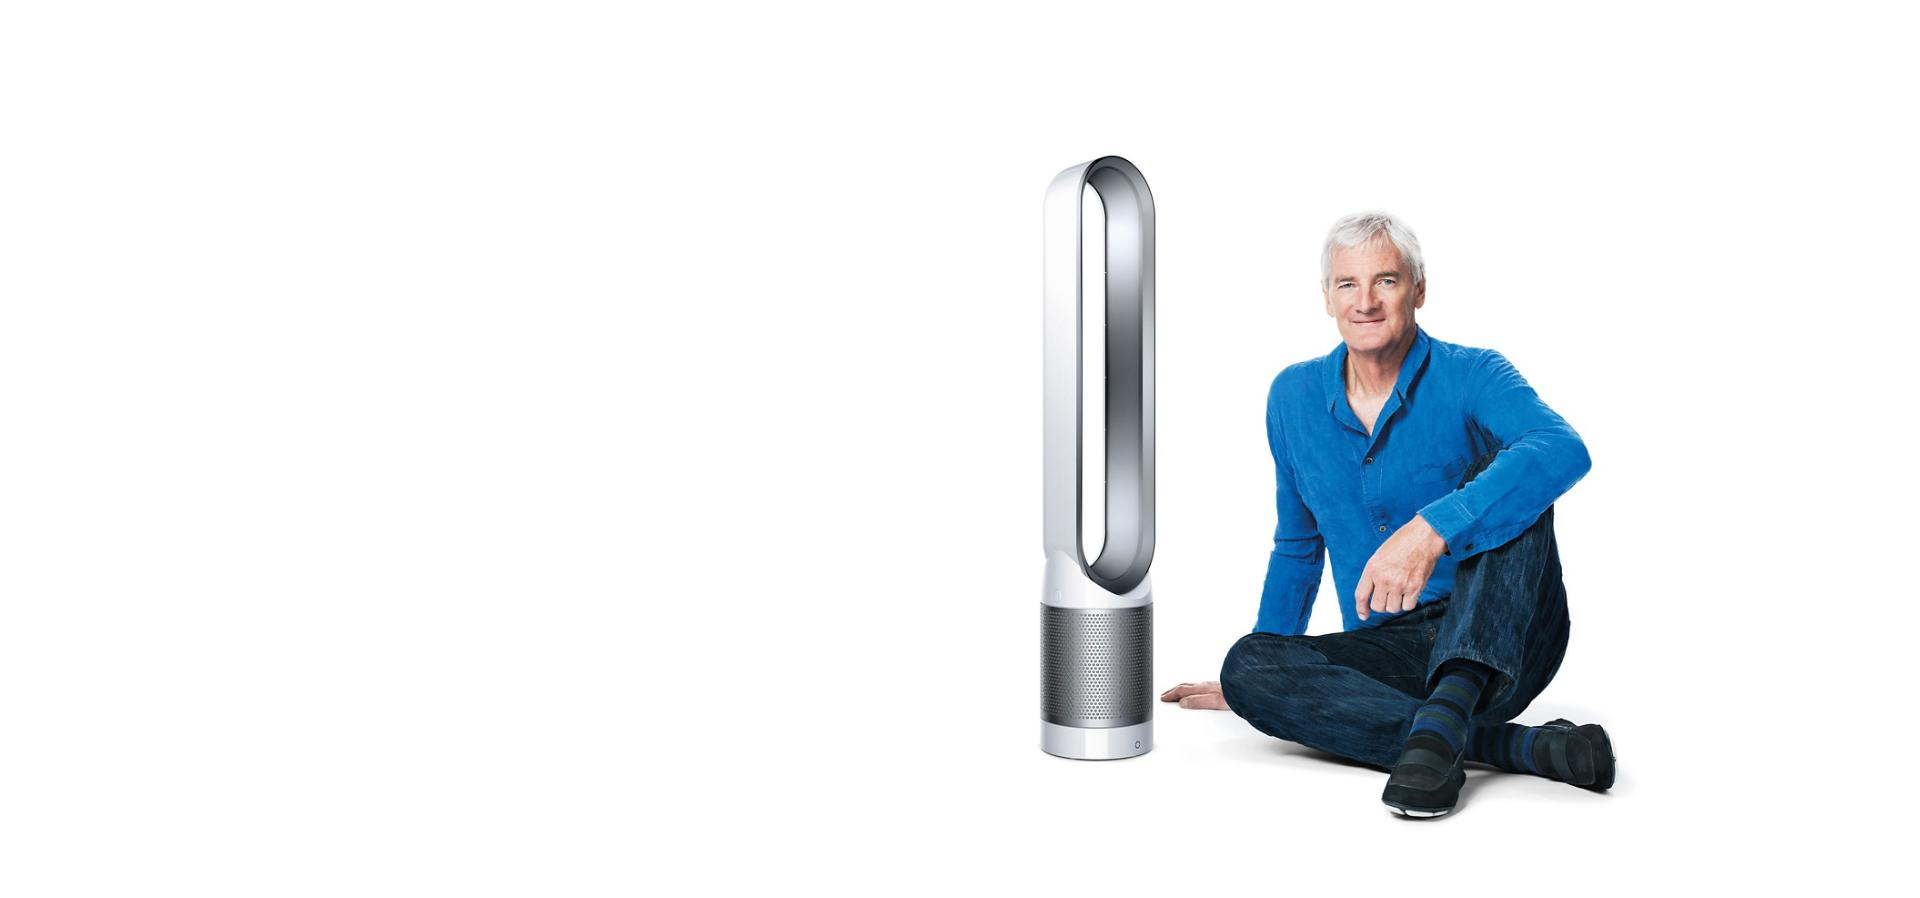 James Dyson with Dyson Pure Cool Link™ tower purifier